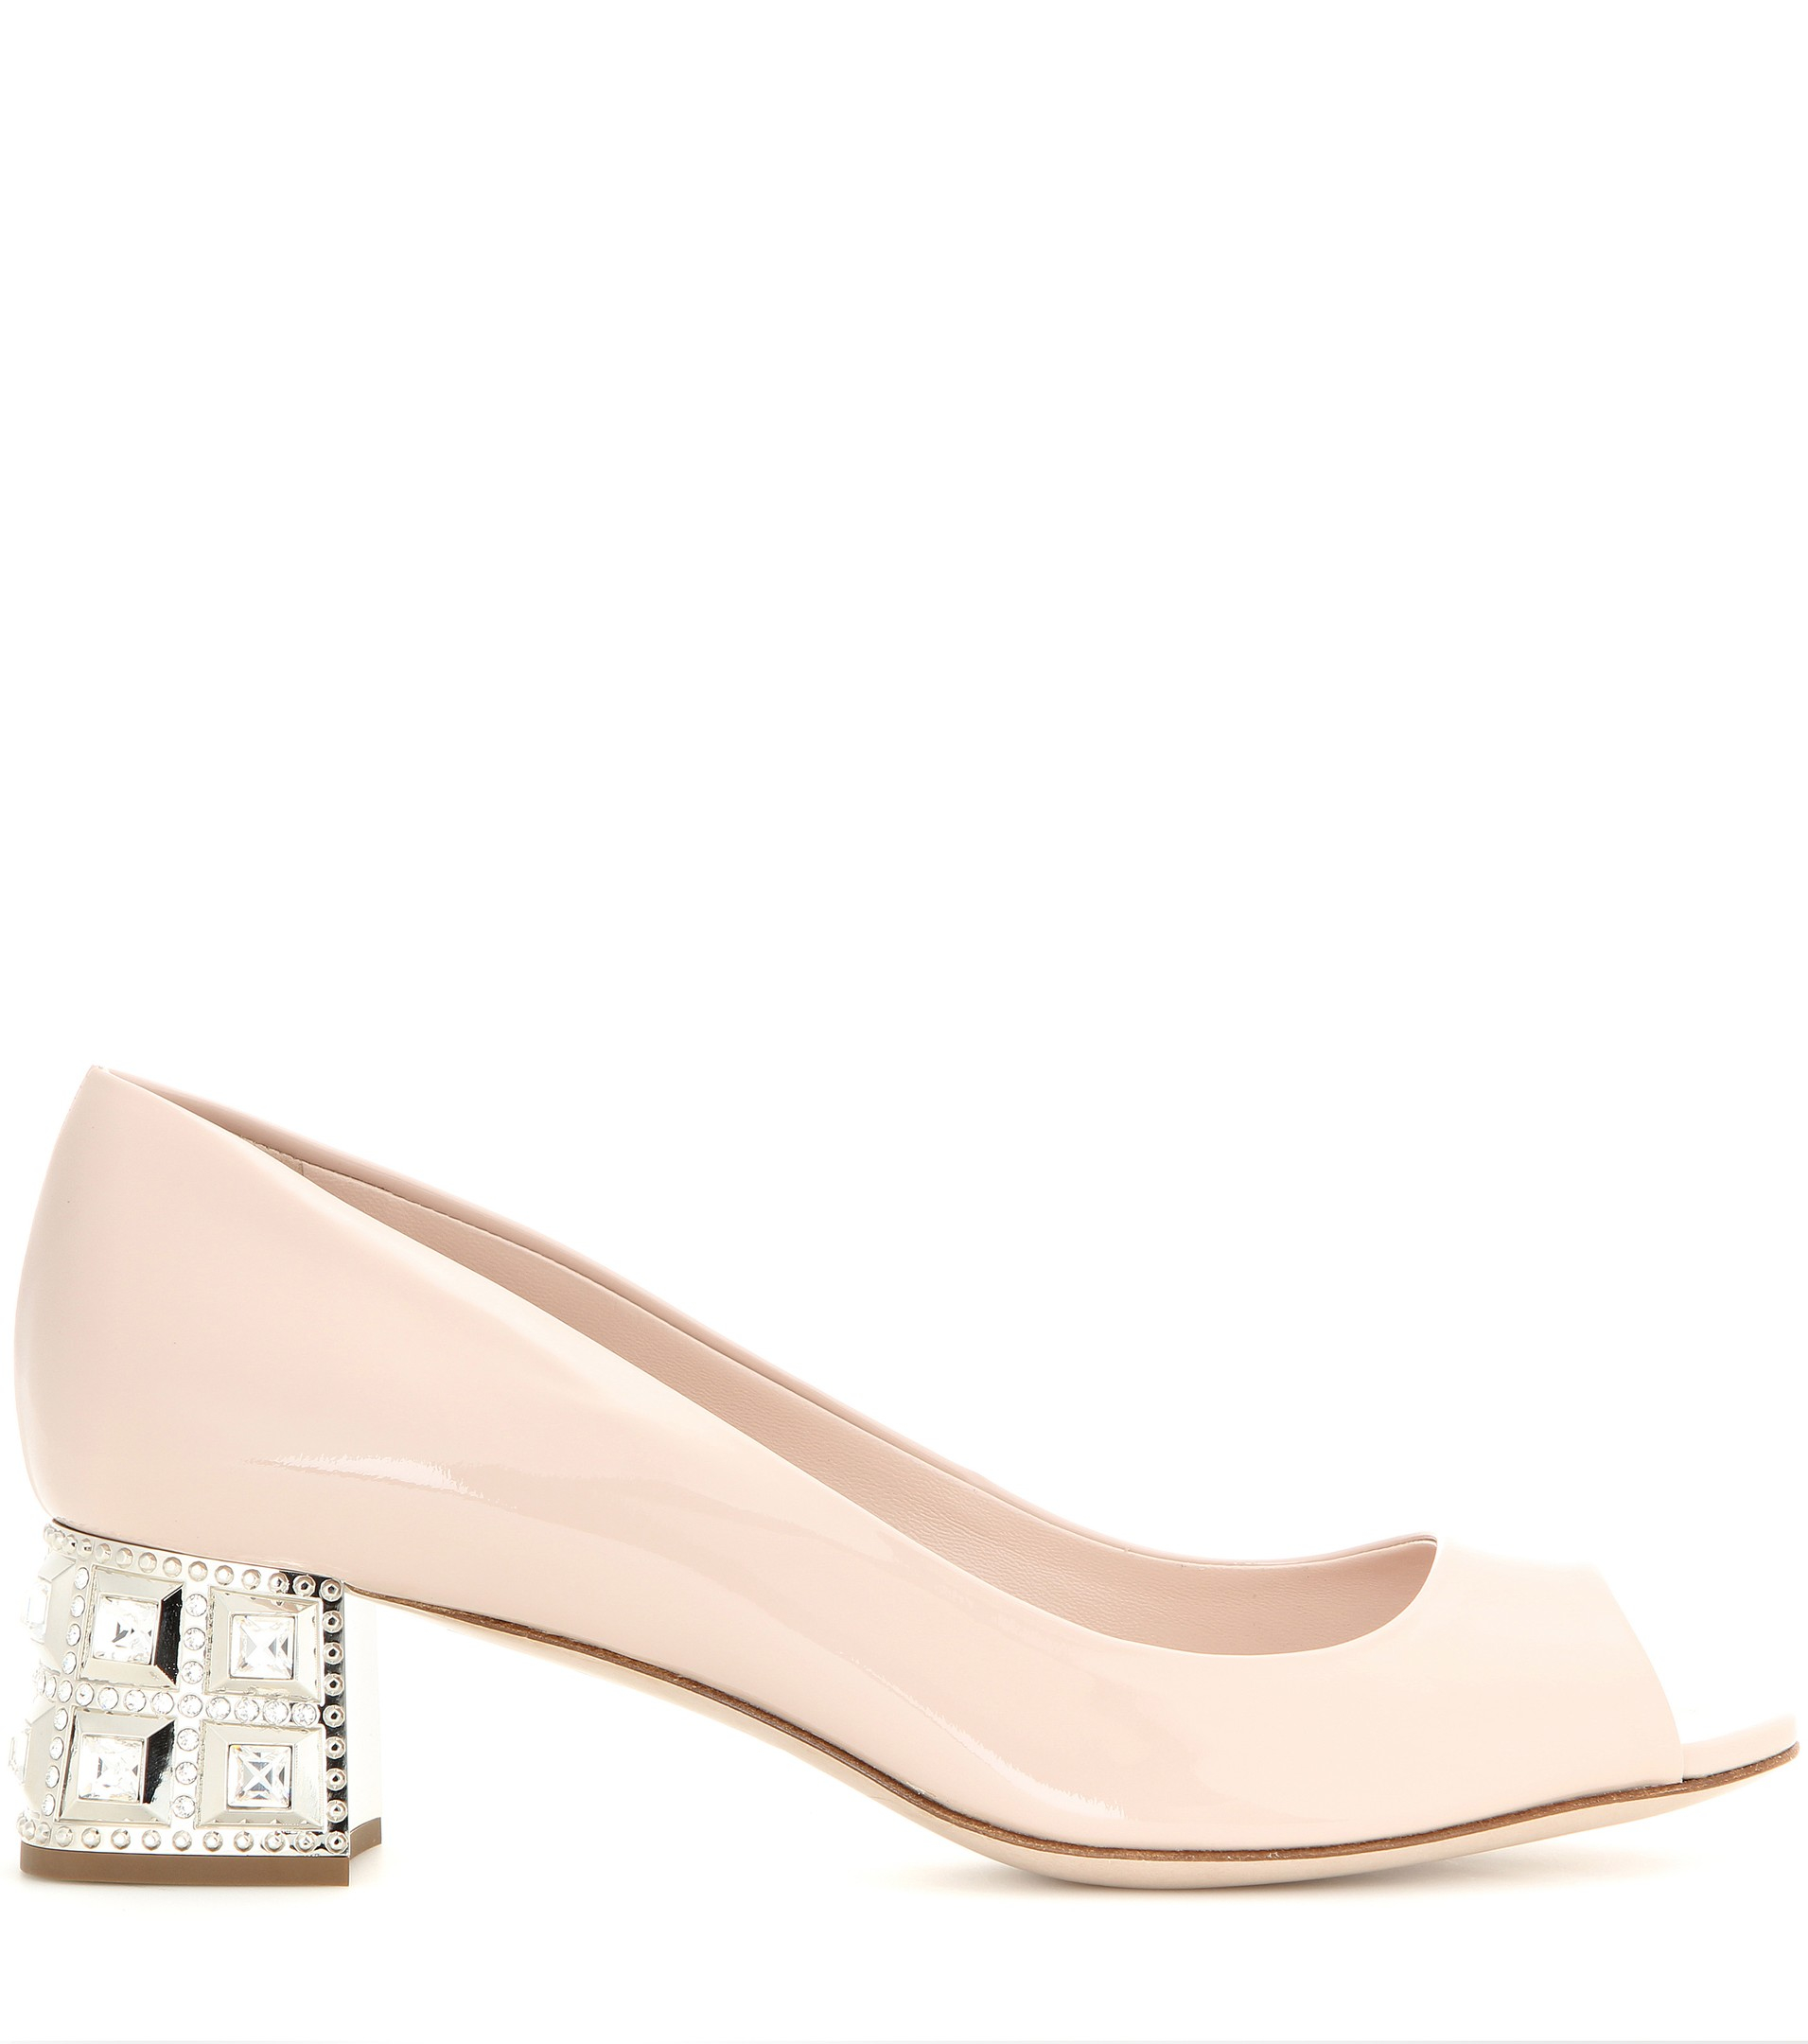 b3e7867217 Miu Miu Embellished Patent Leather Open-toe Pumps in Pink - Lyst